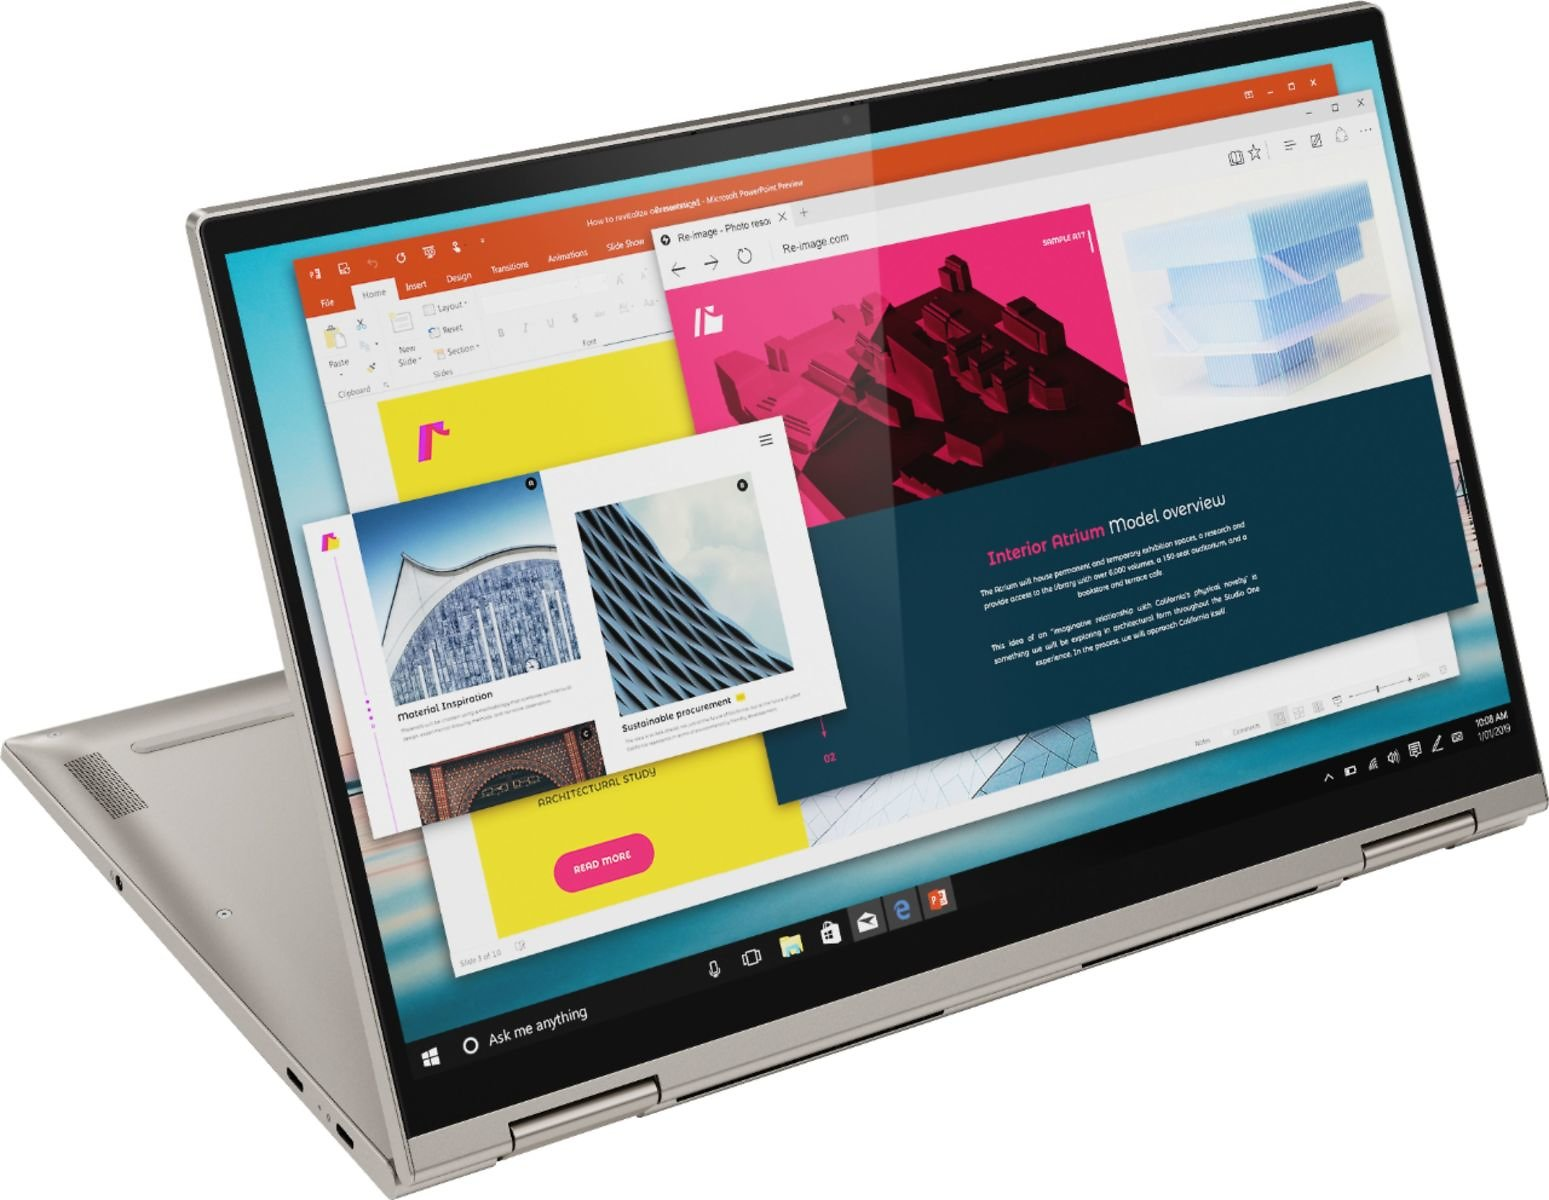 Save $300 Today Only! Lenovo - Yoga C740 2-in-1 15.6